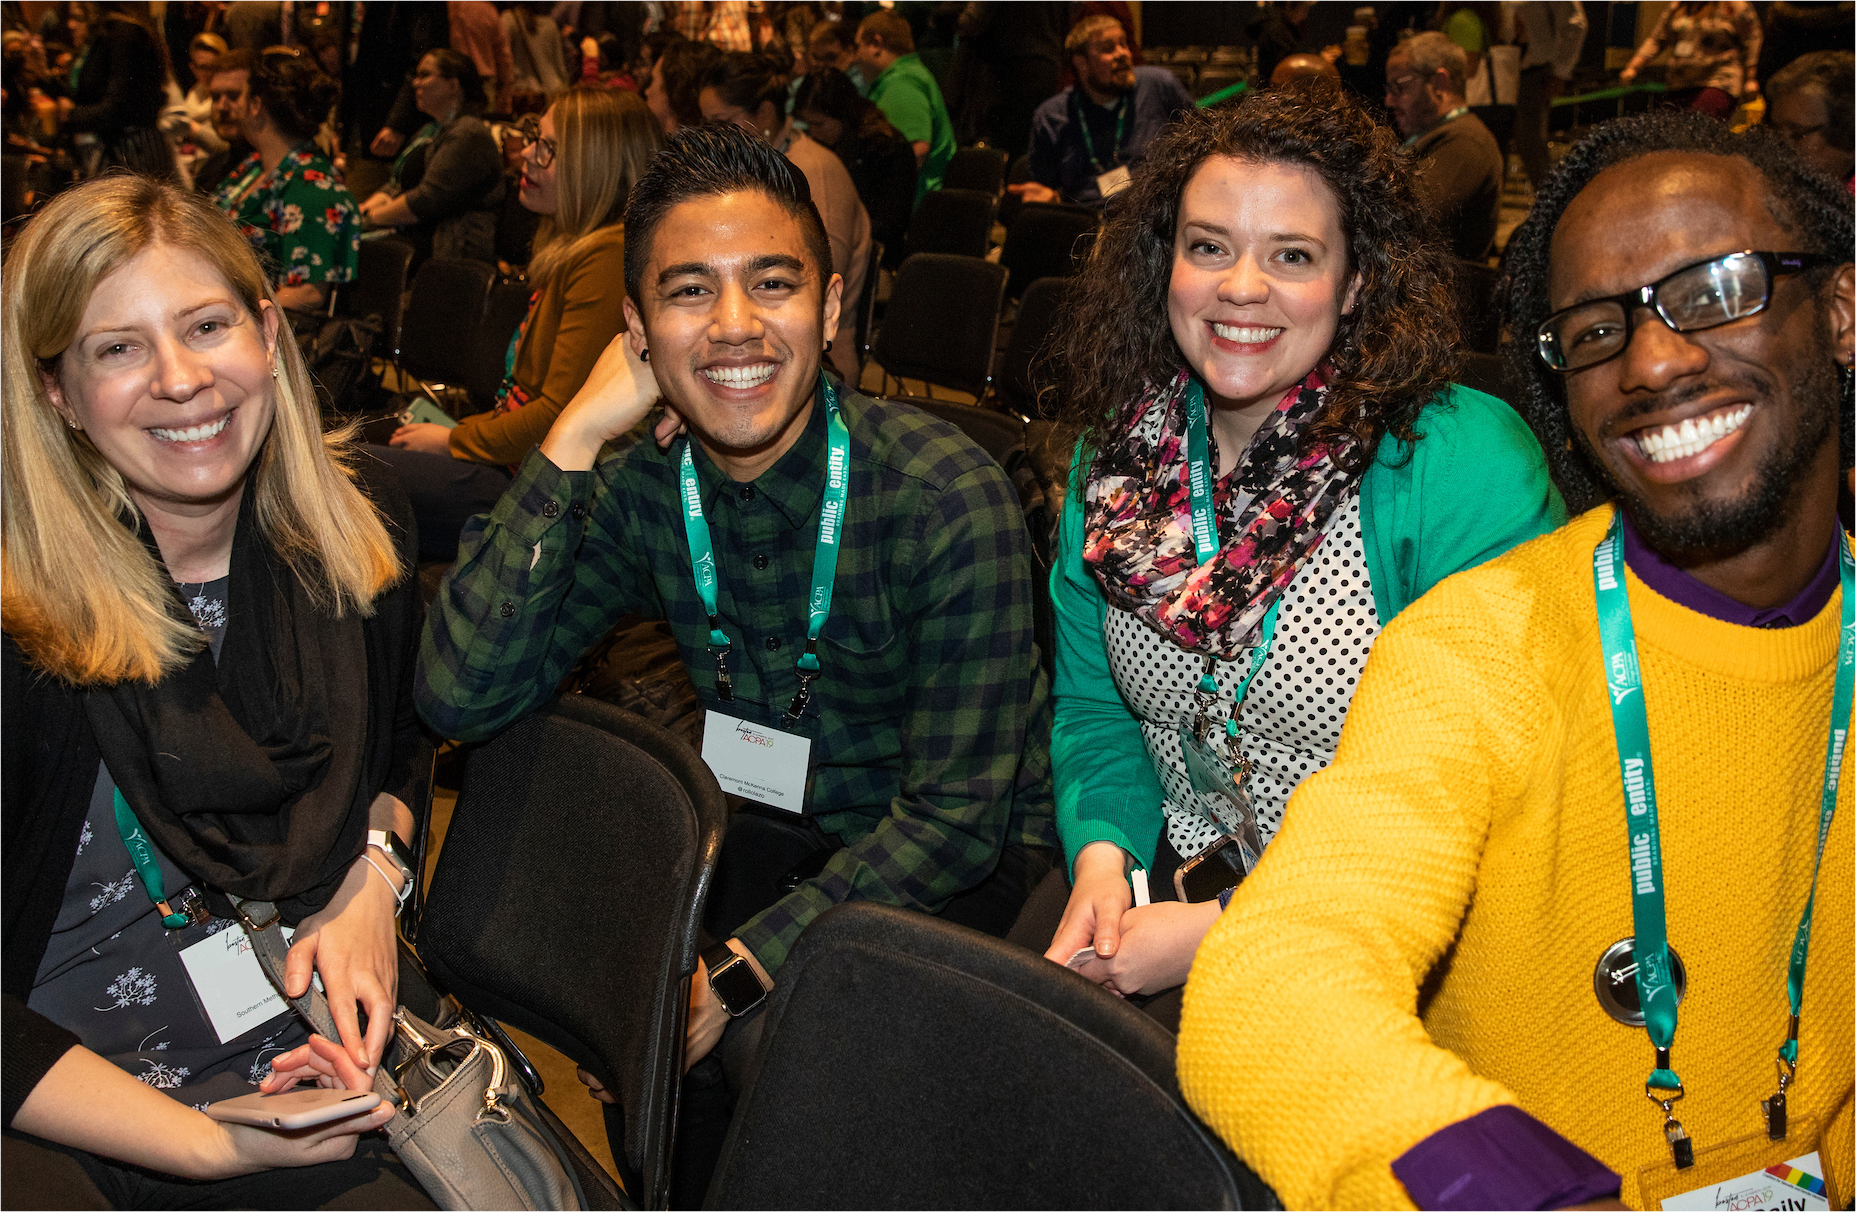 four ACPA members during Convention smiling at the camera